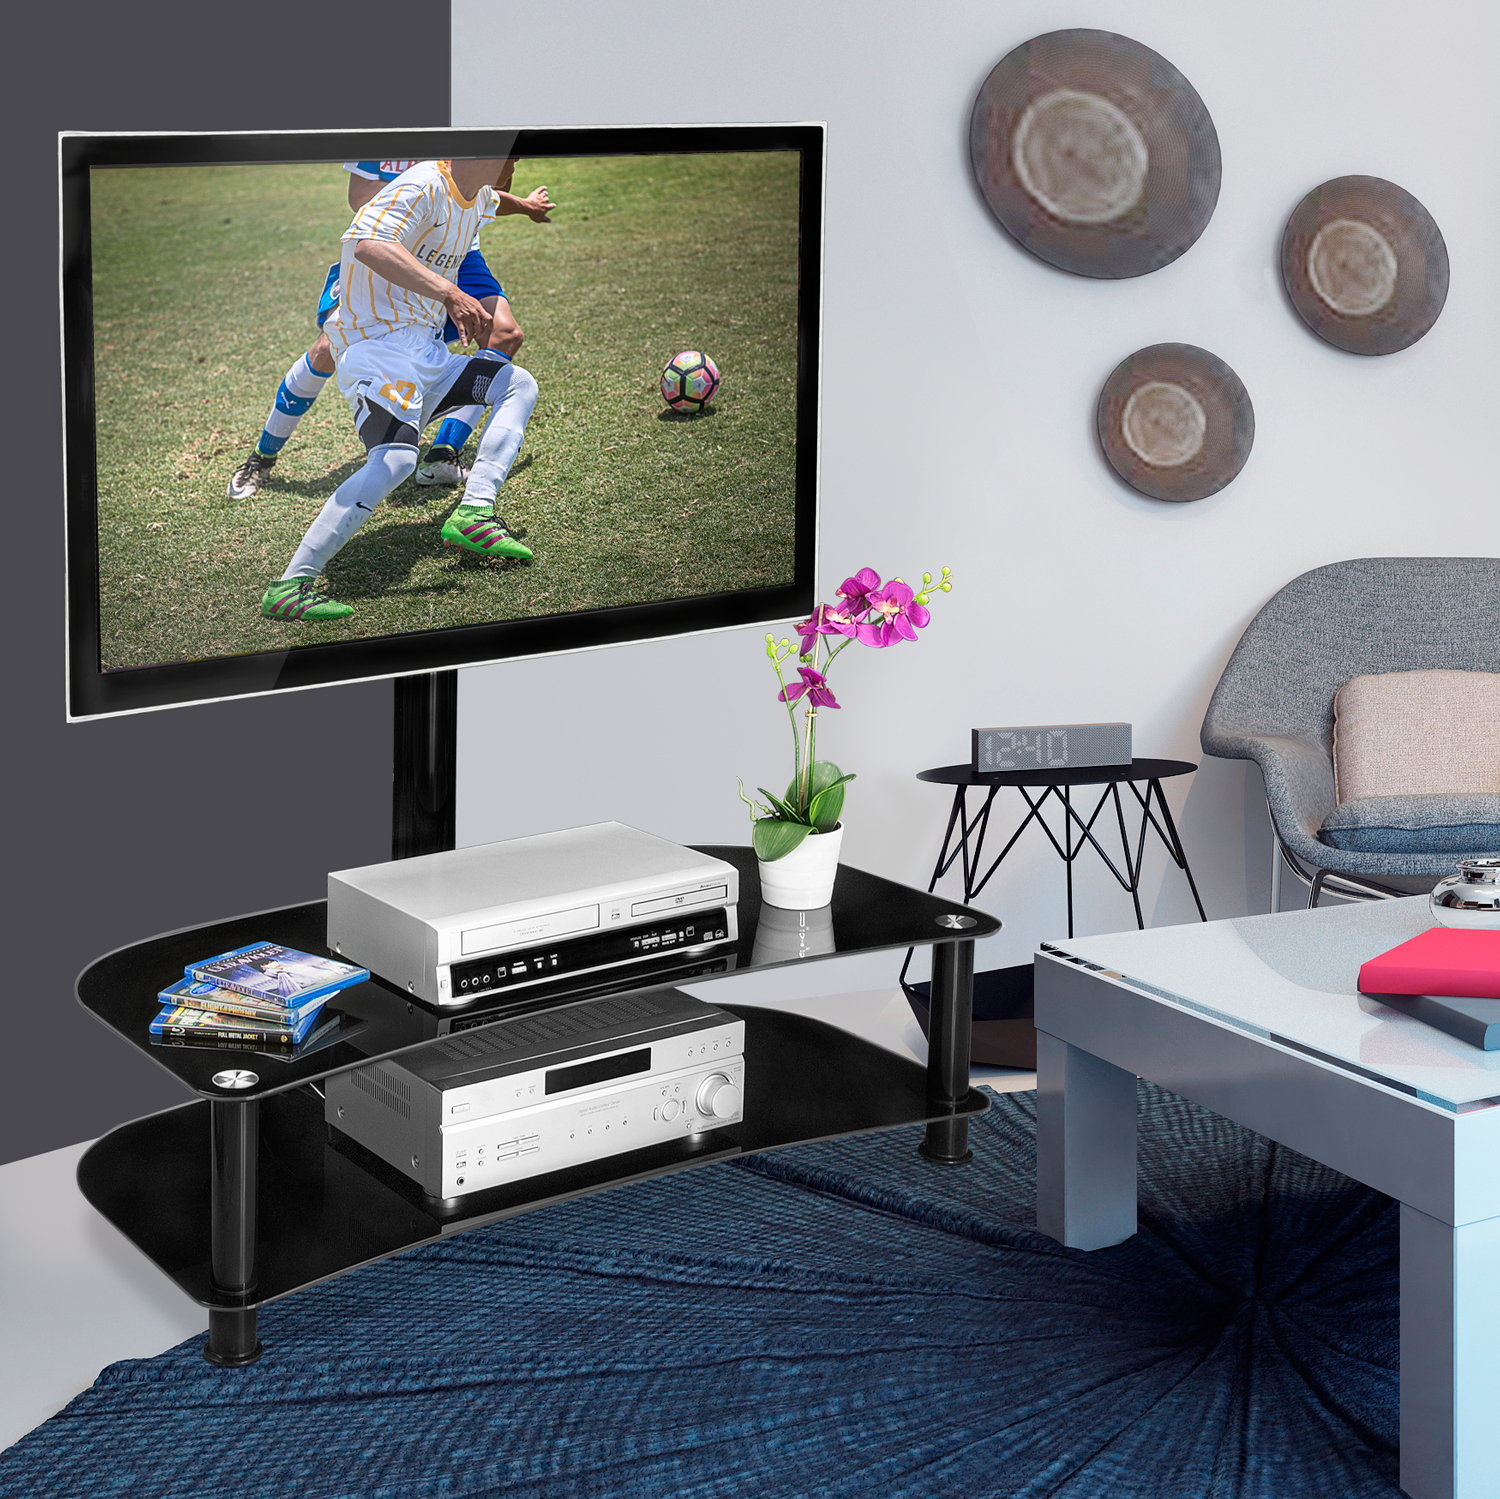 Mount-It! TV Entertainment Center with A/V Shelving, TV S...